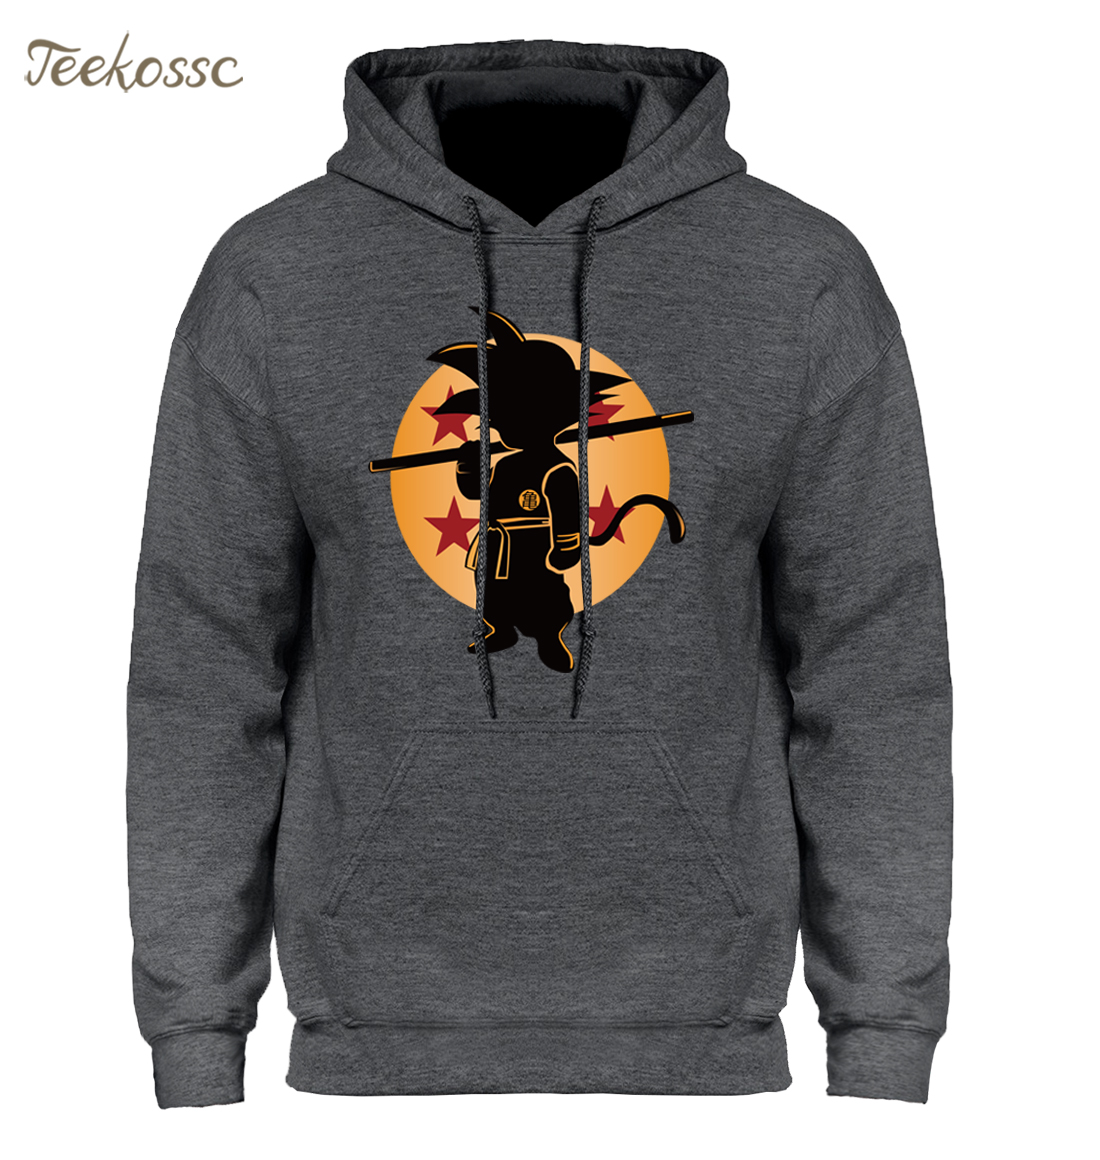 Dragon Ball Z Pocket Hoodie Men Japan Anime Hoodies Mens DragonBall Hooded Sweatshirt 2018 Winter Pullover Long Sleeve Outerwear